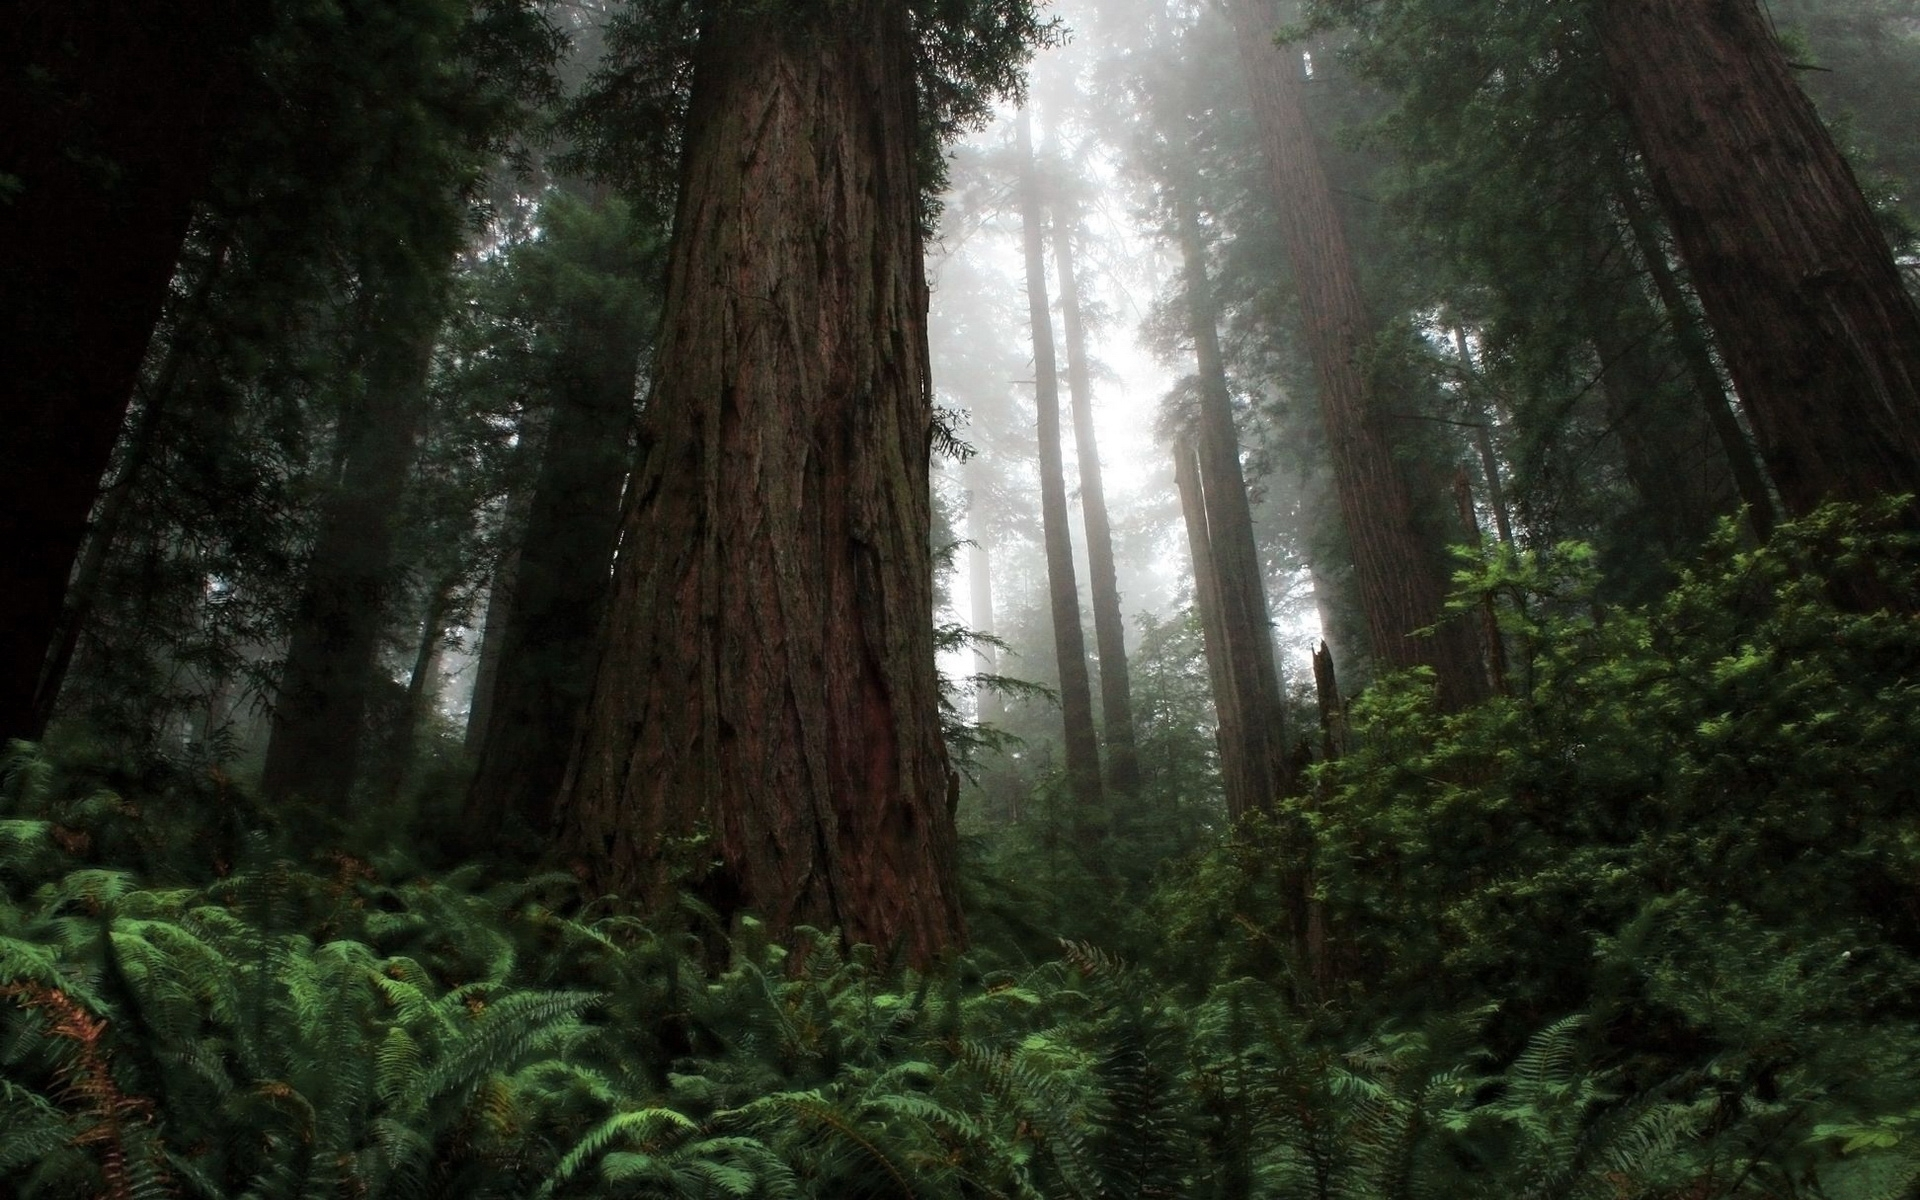 4k wallpaper nature redwoods - photo #3